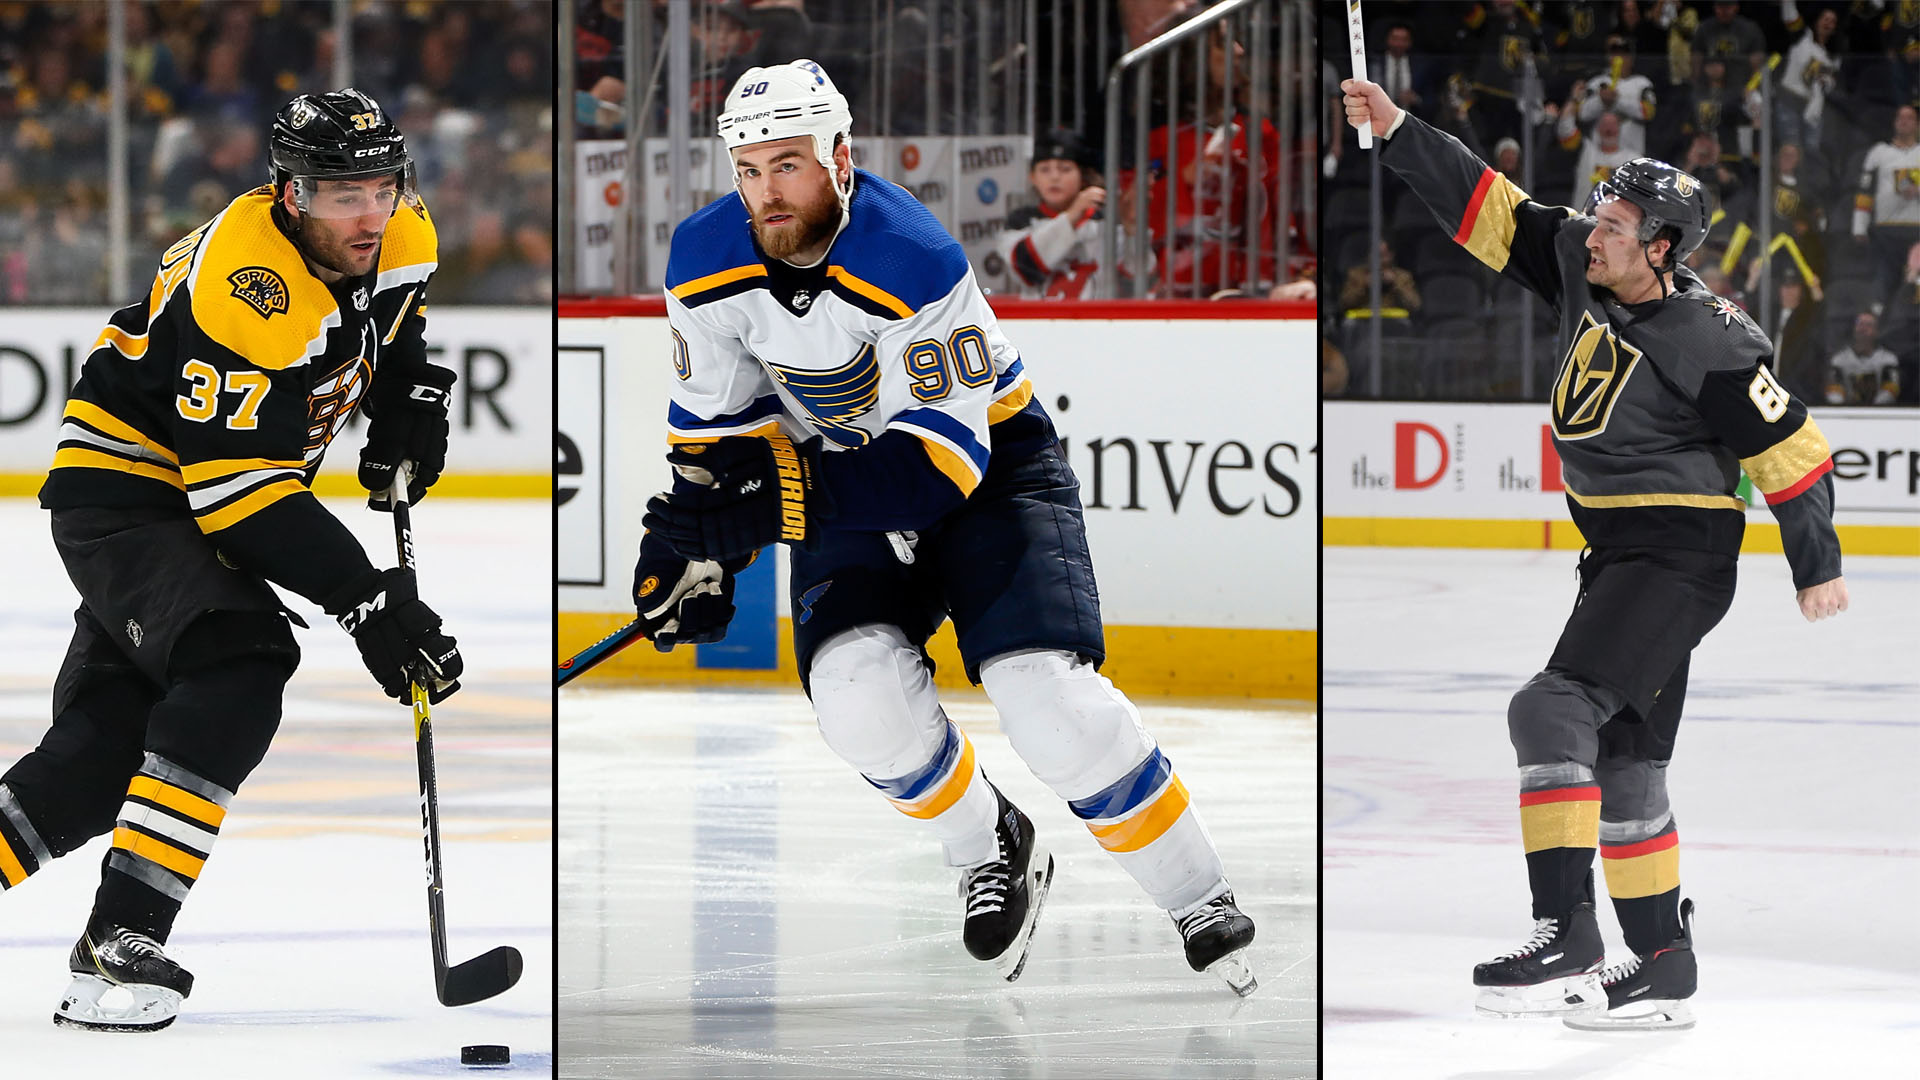 NHL awards 2019: Three finalists named for Lady Byng Trophy